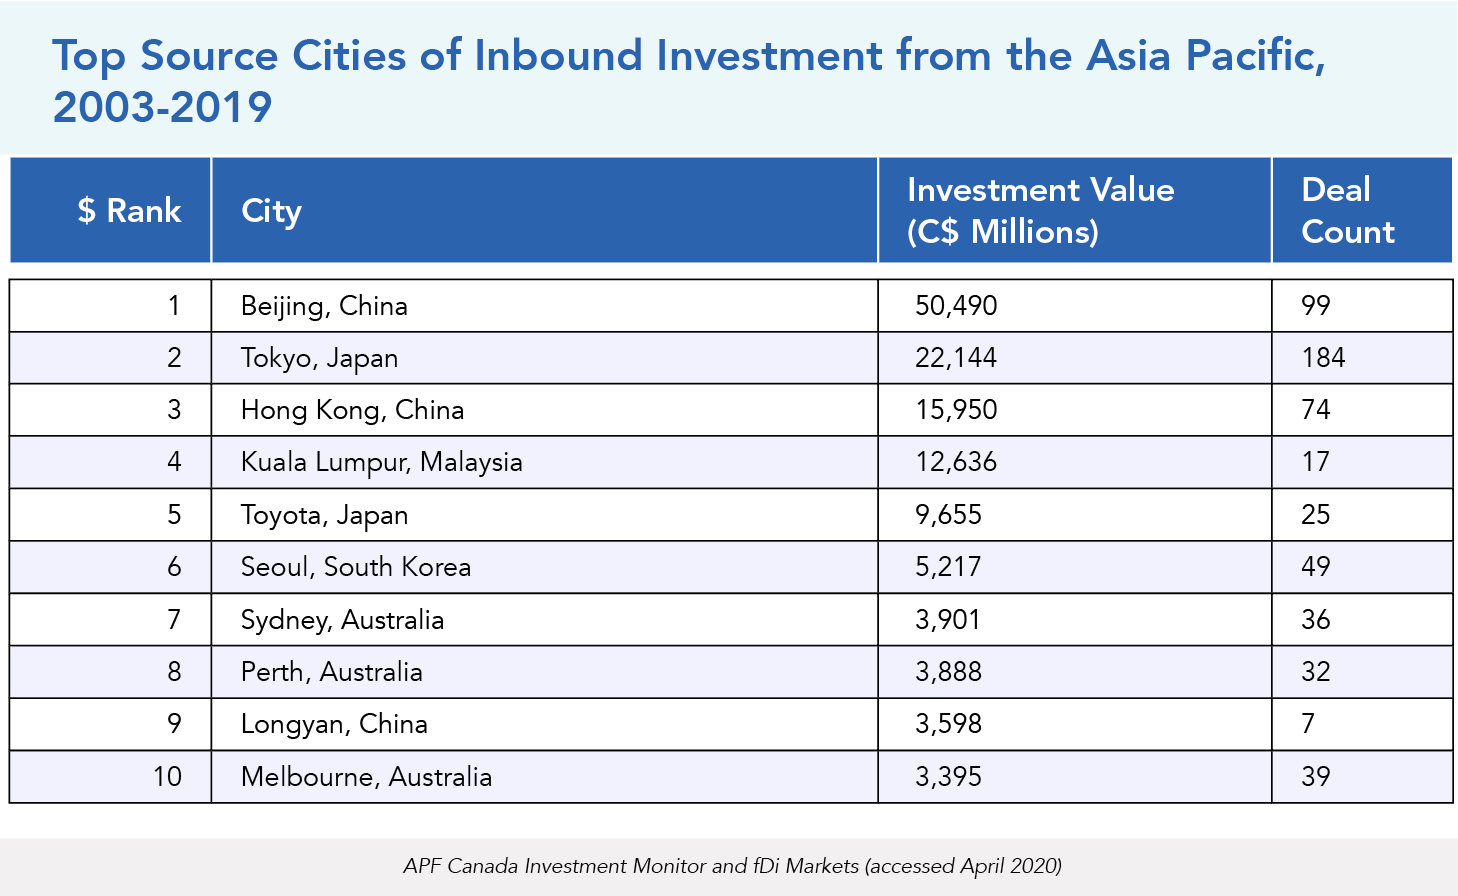 Top Source Cities of Inbound Investment from the Asia Pacific, 2003-2019